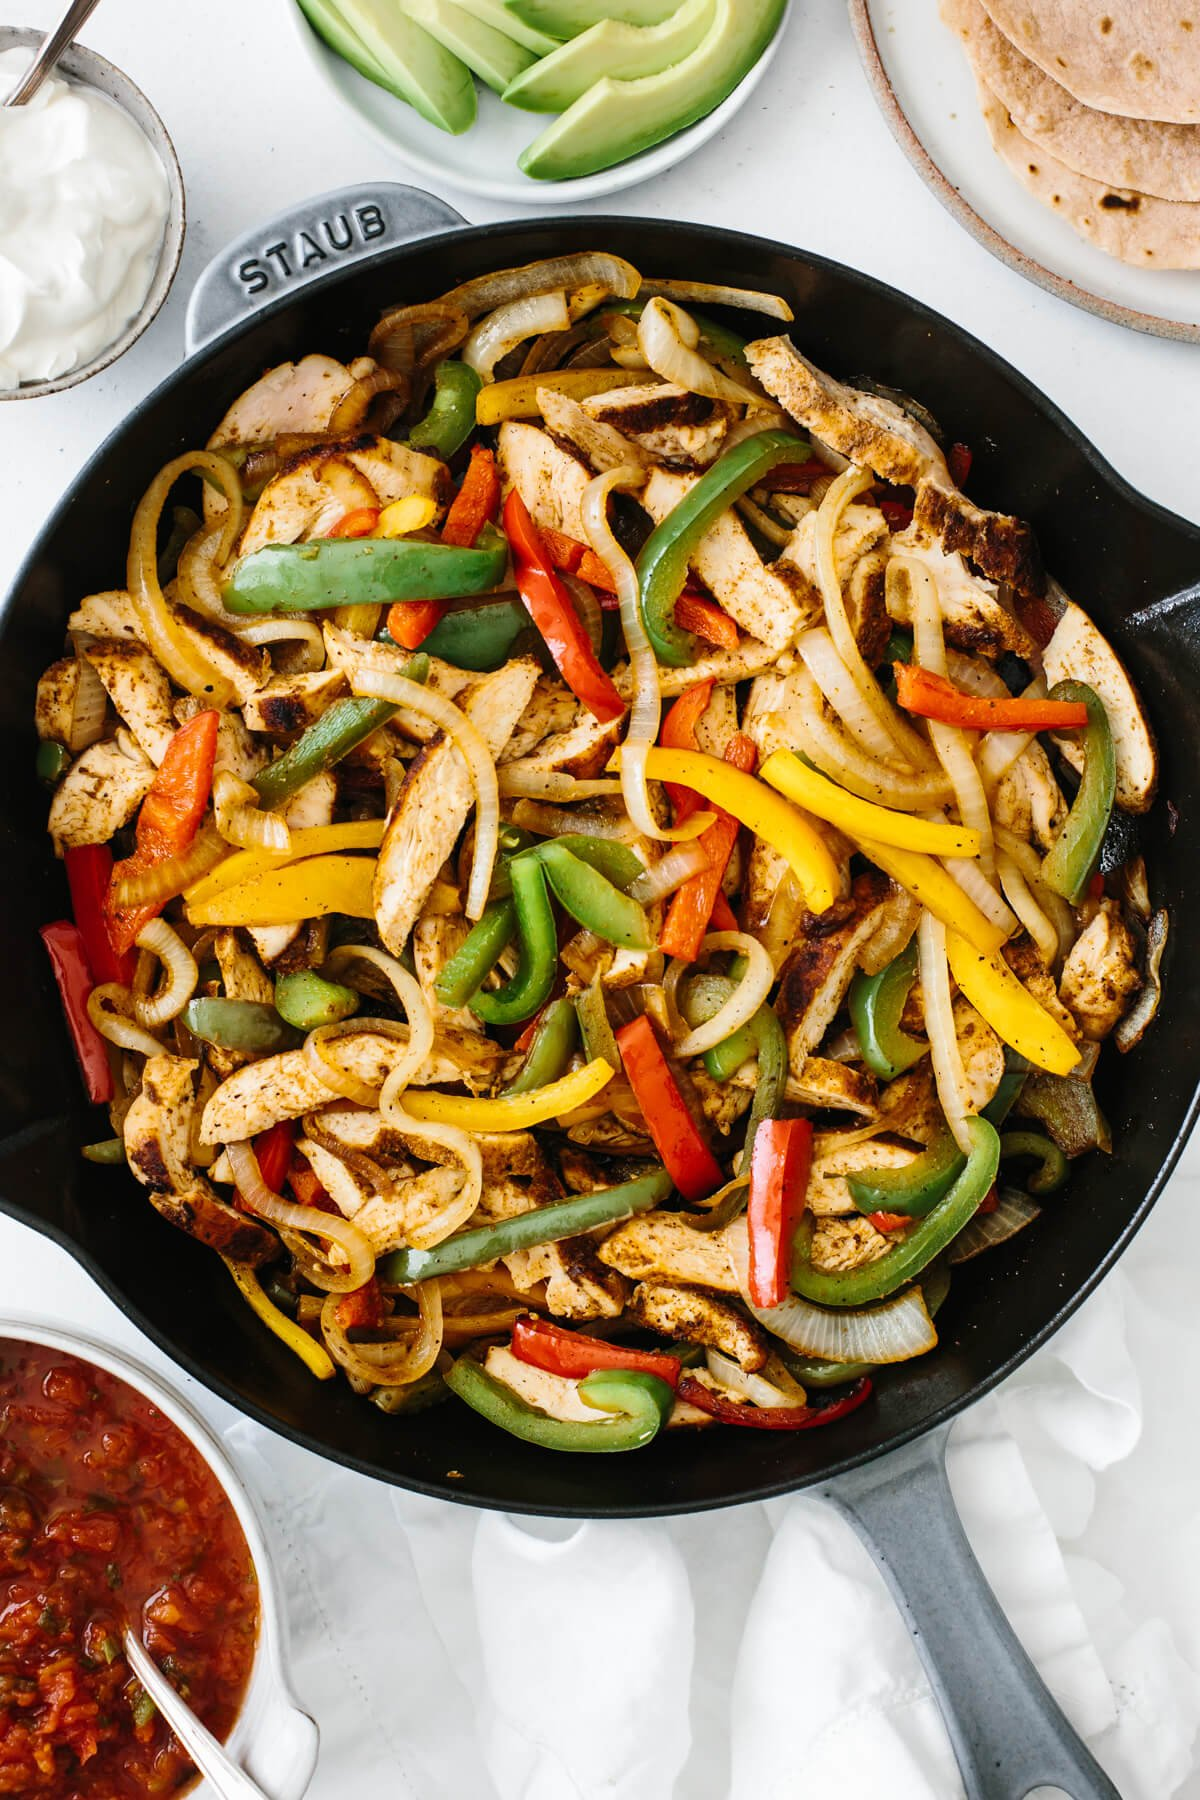 Chicken fajitas in a pan on a table with toppings.